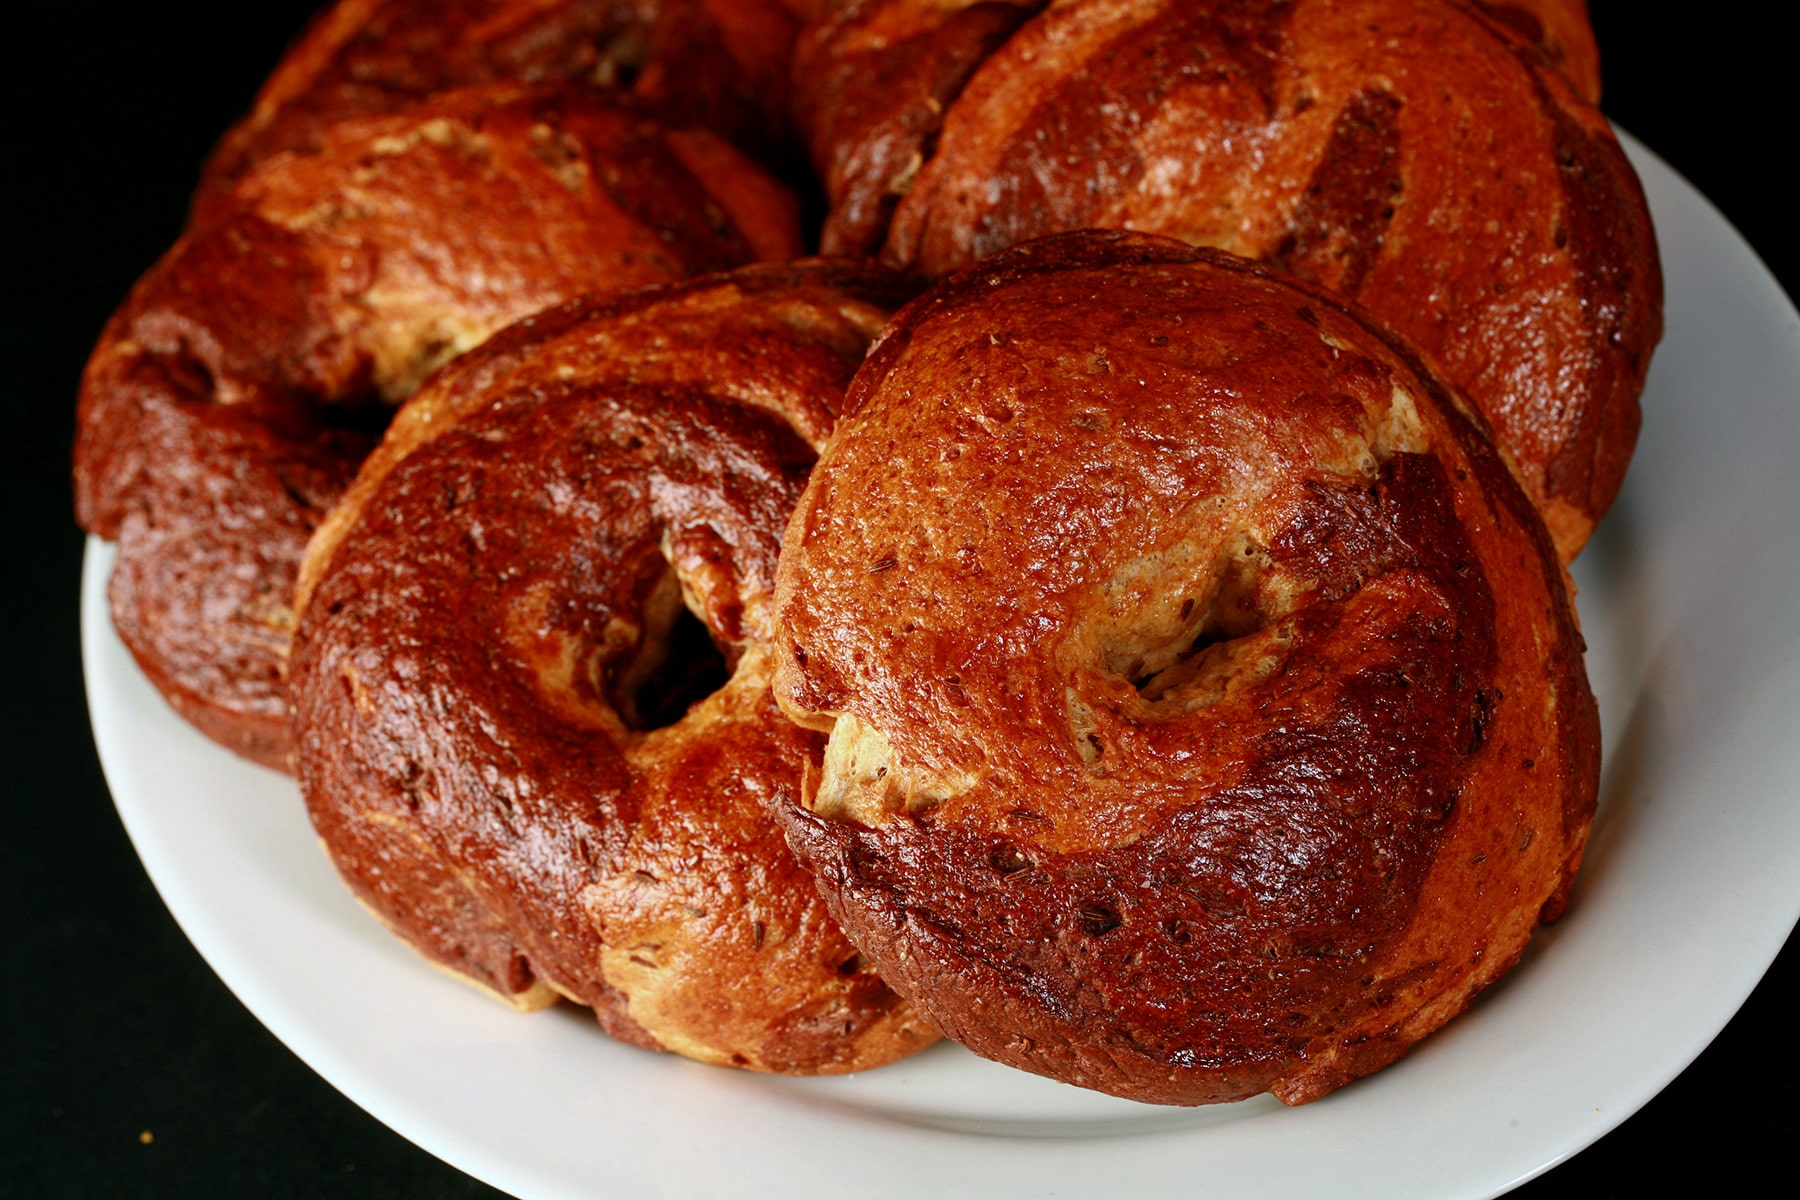 A plate of 6 golden brown marbled rye bagels.